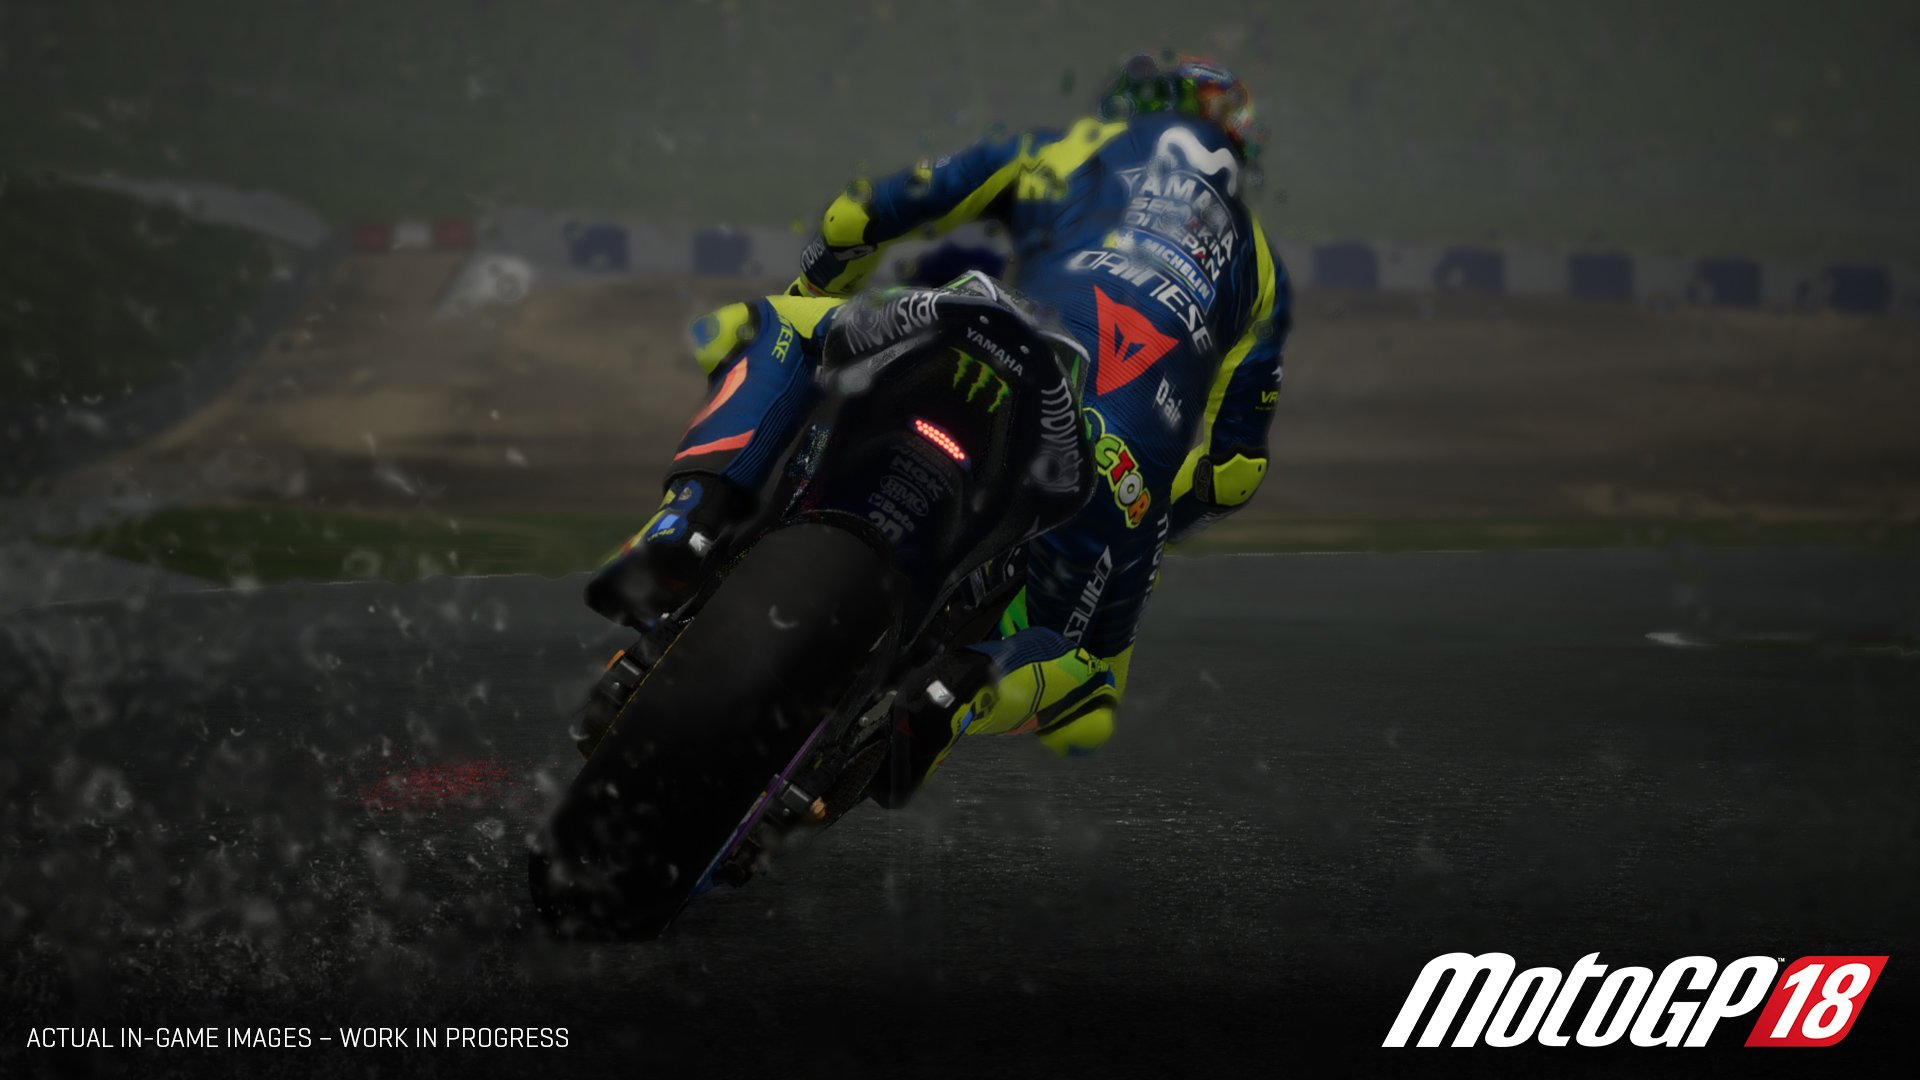 MotoGP 18 Announced, Coming June 7 - Inside Sim Racing